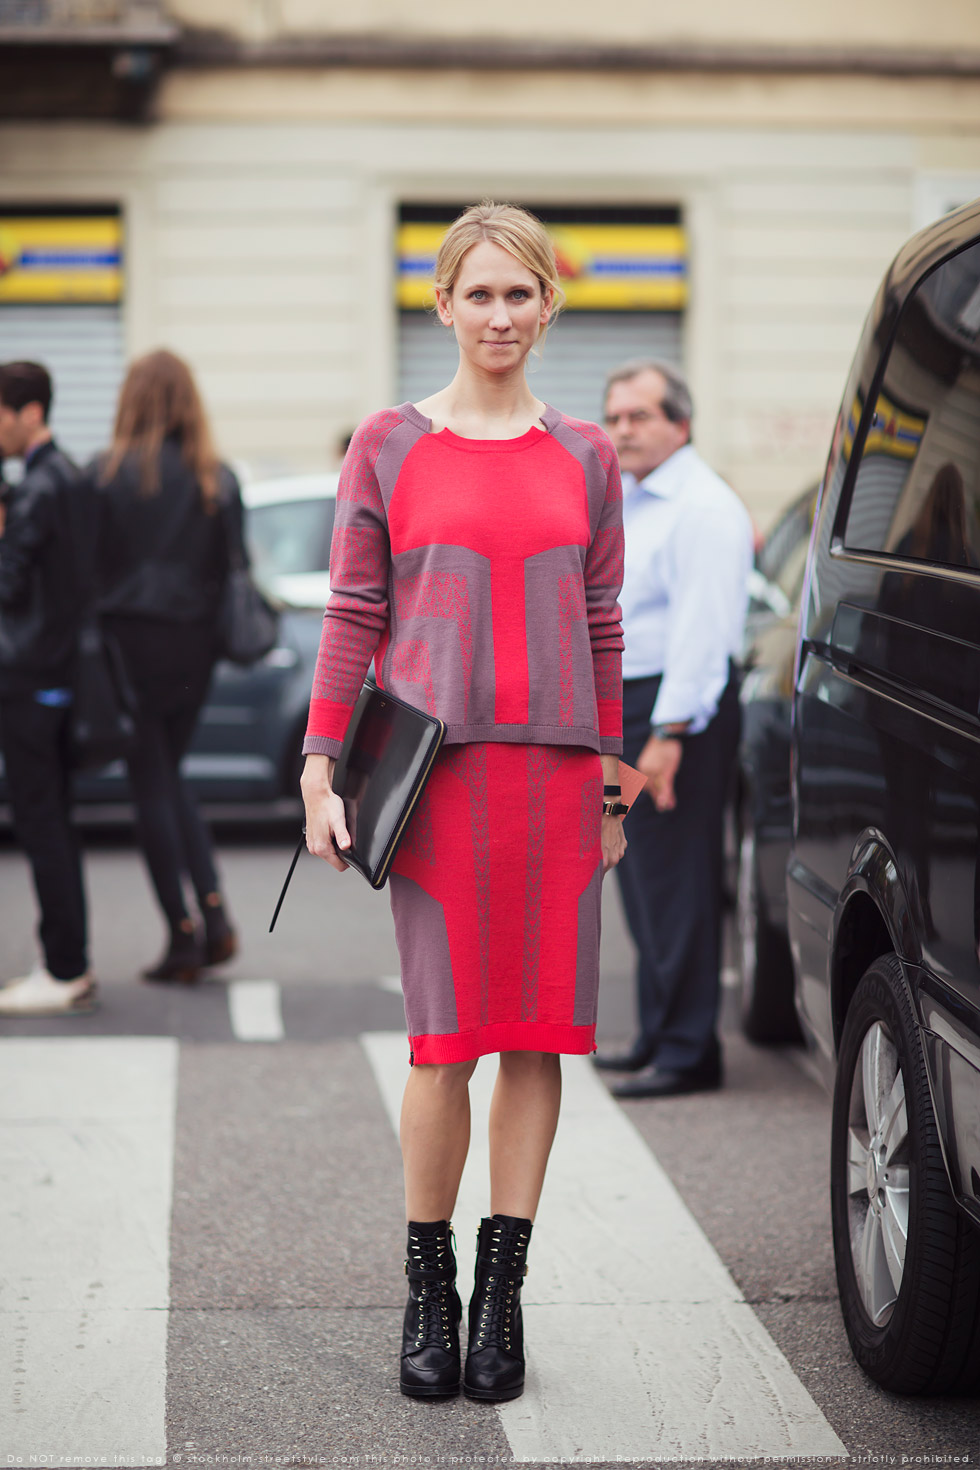 red sweater pin skirt street style